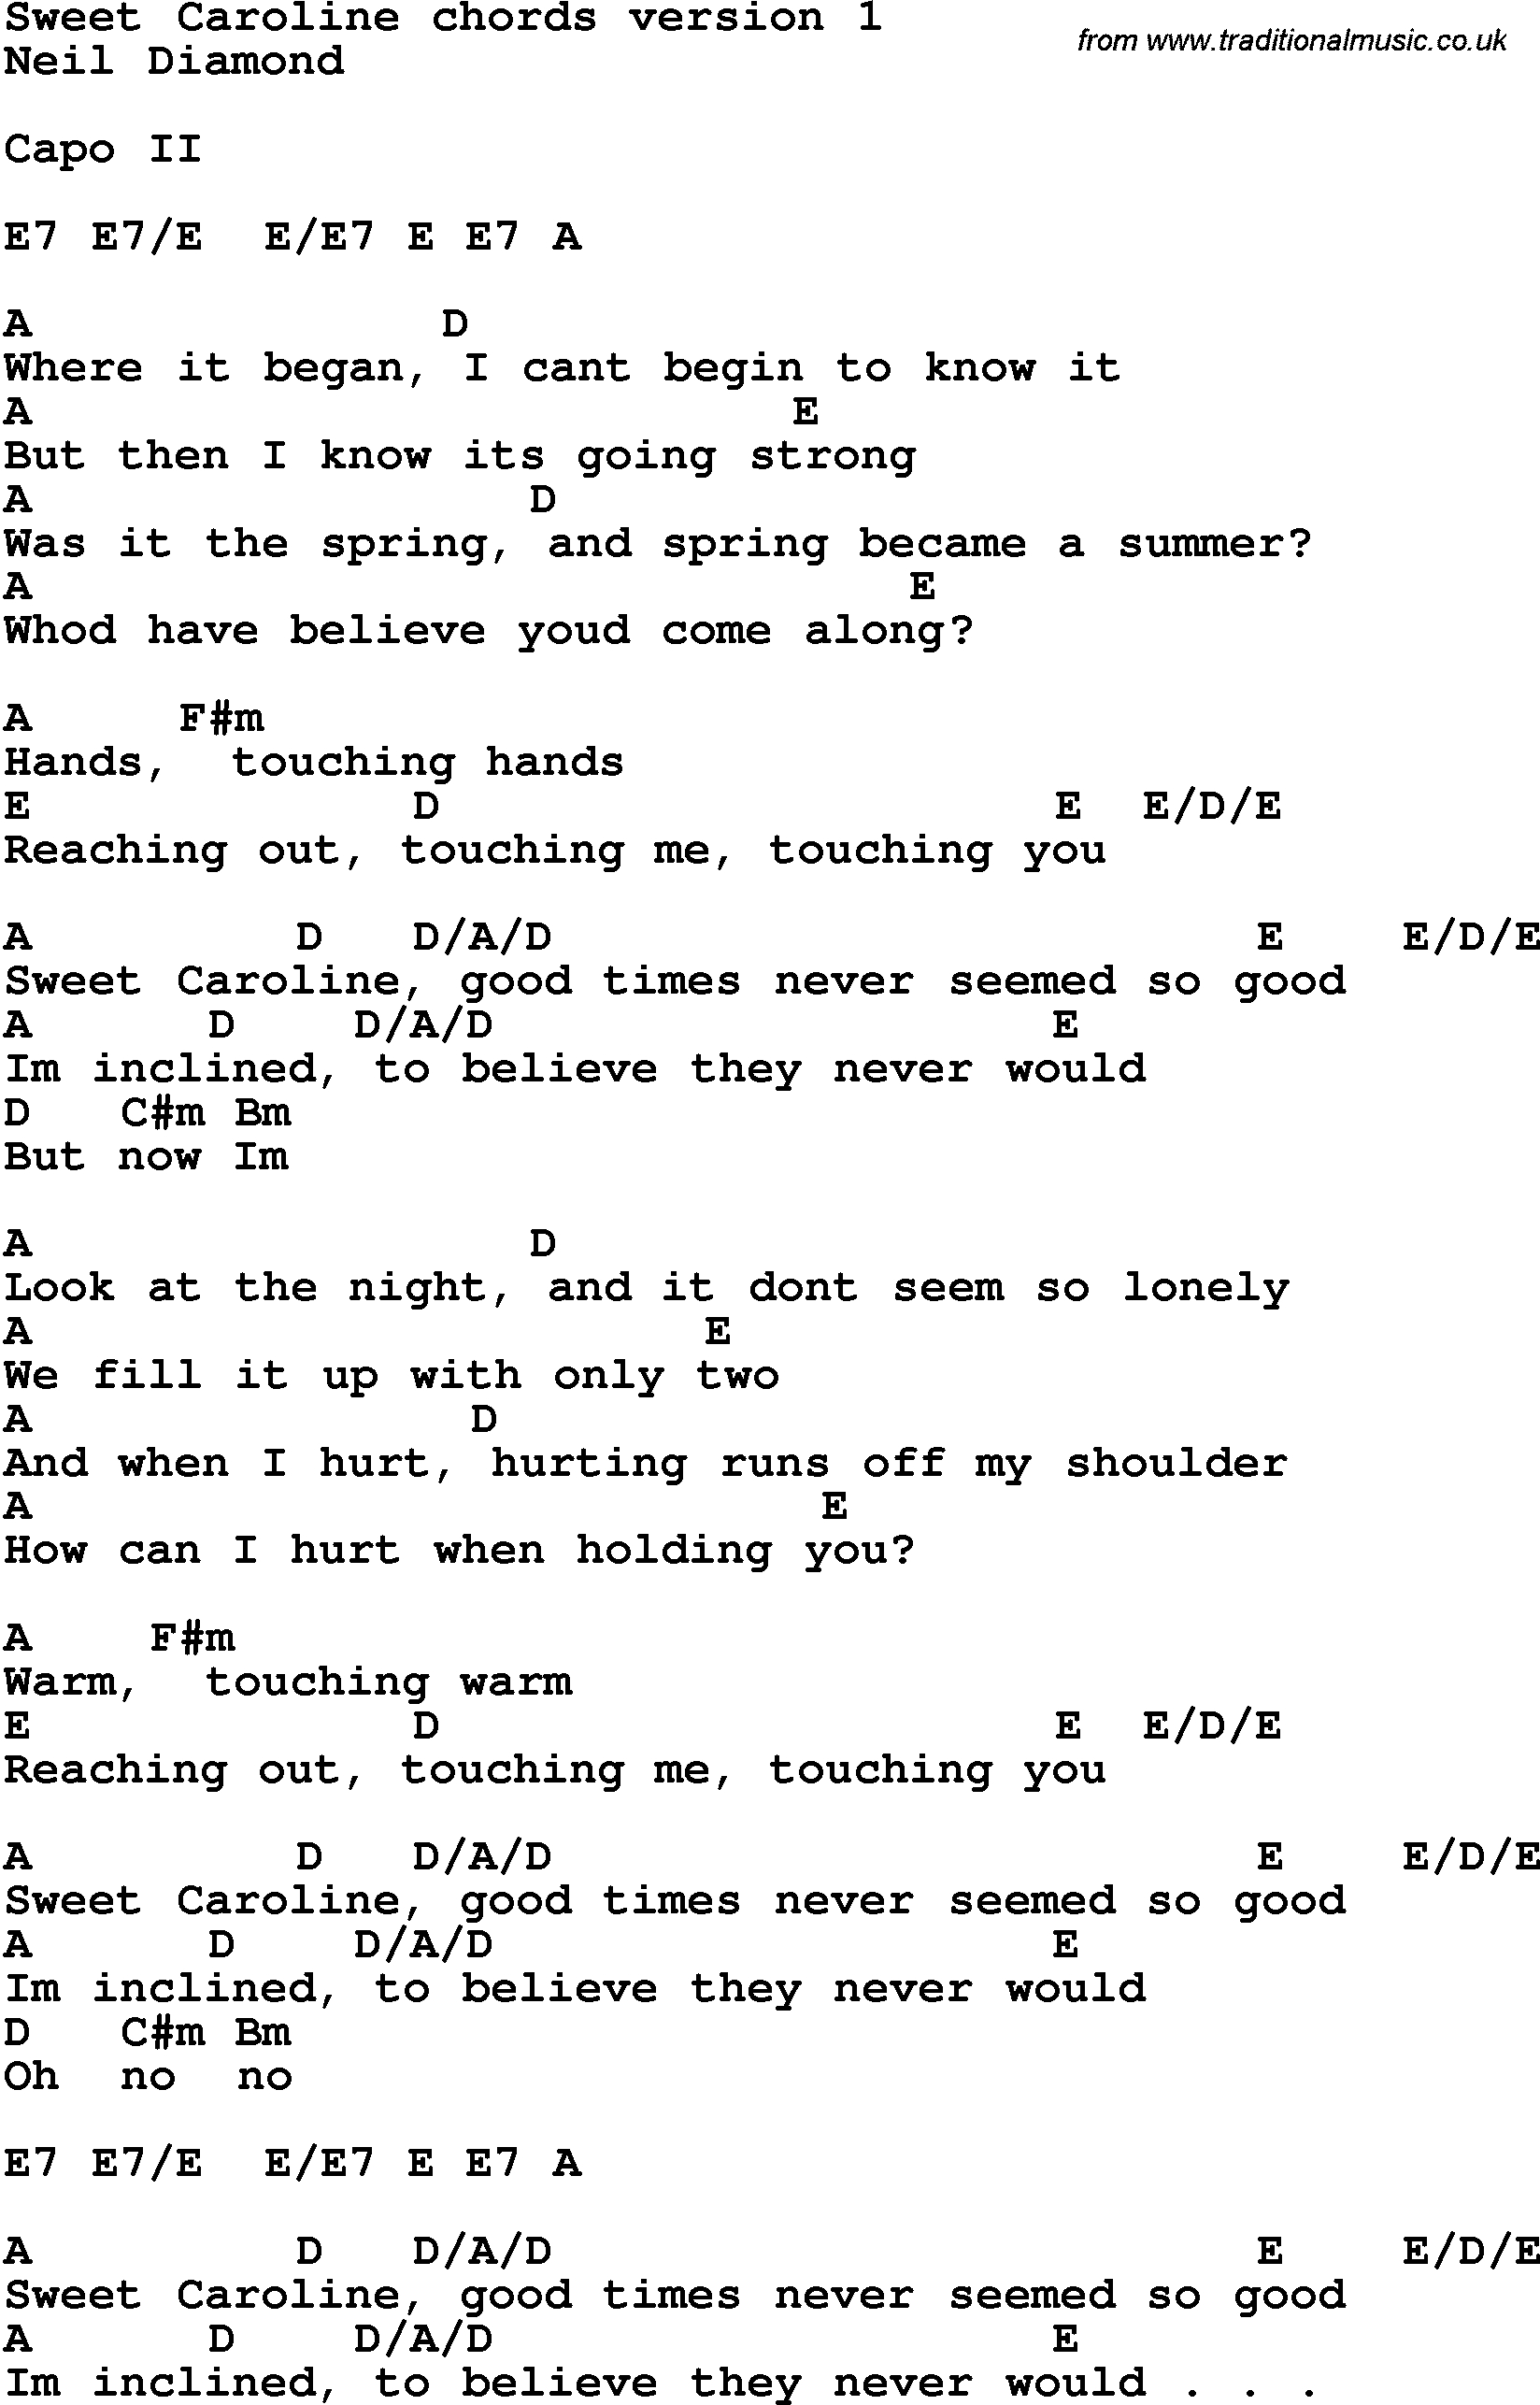 Song Lyrics With Guitar Chords For Sweet Caroline | Don Maclean In - Free Printable Song Lyrics With Guitar Chords